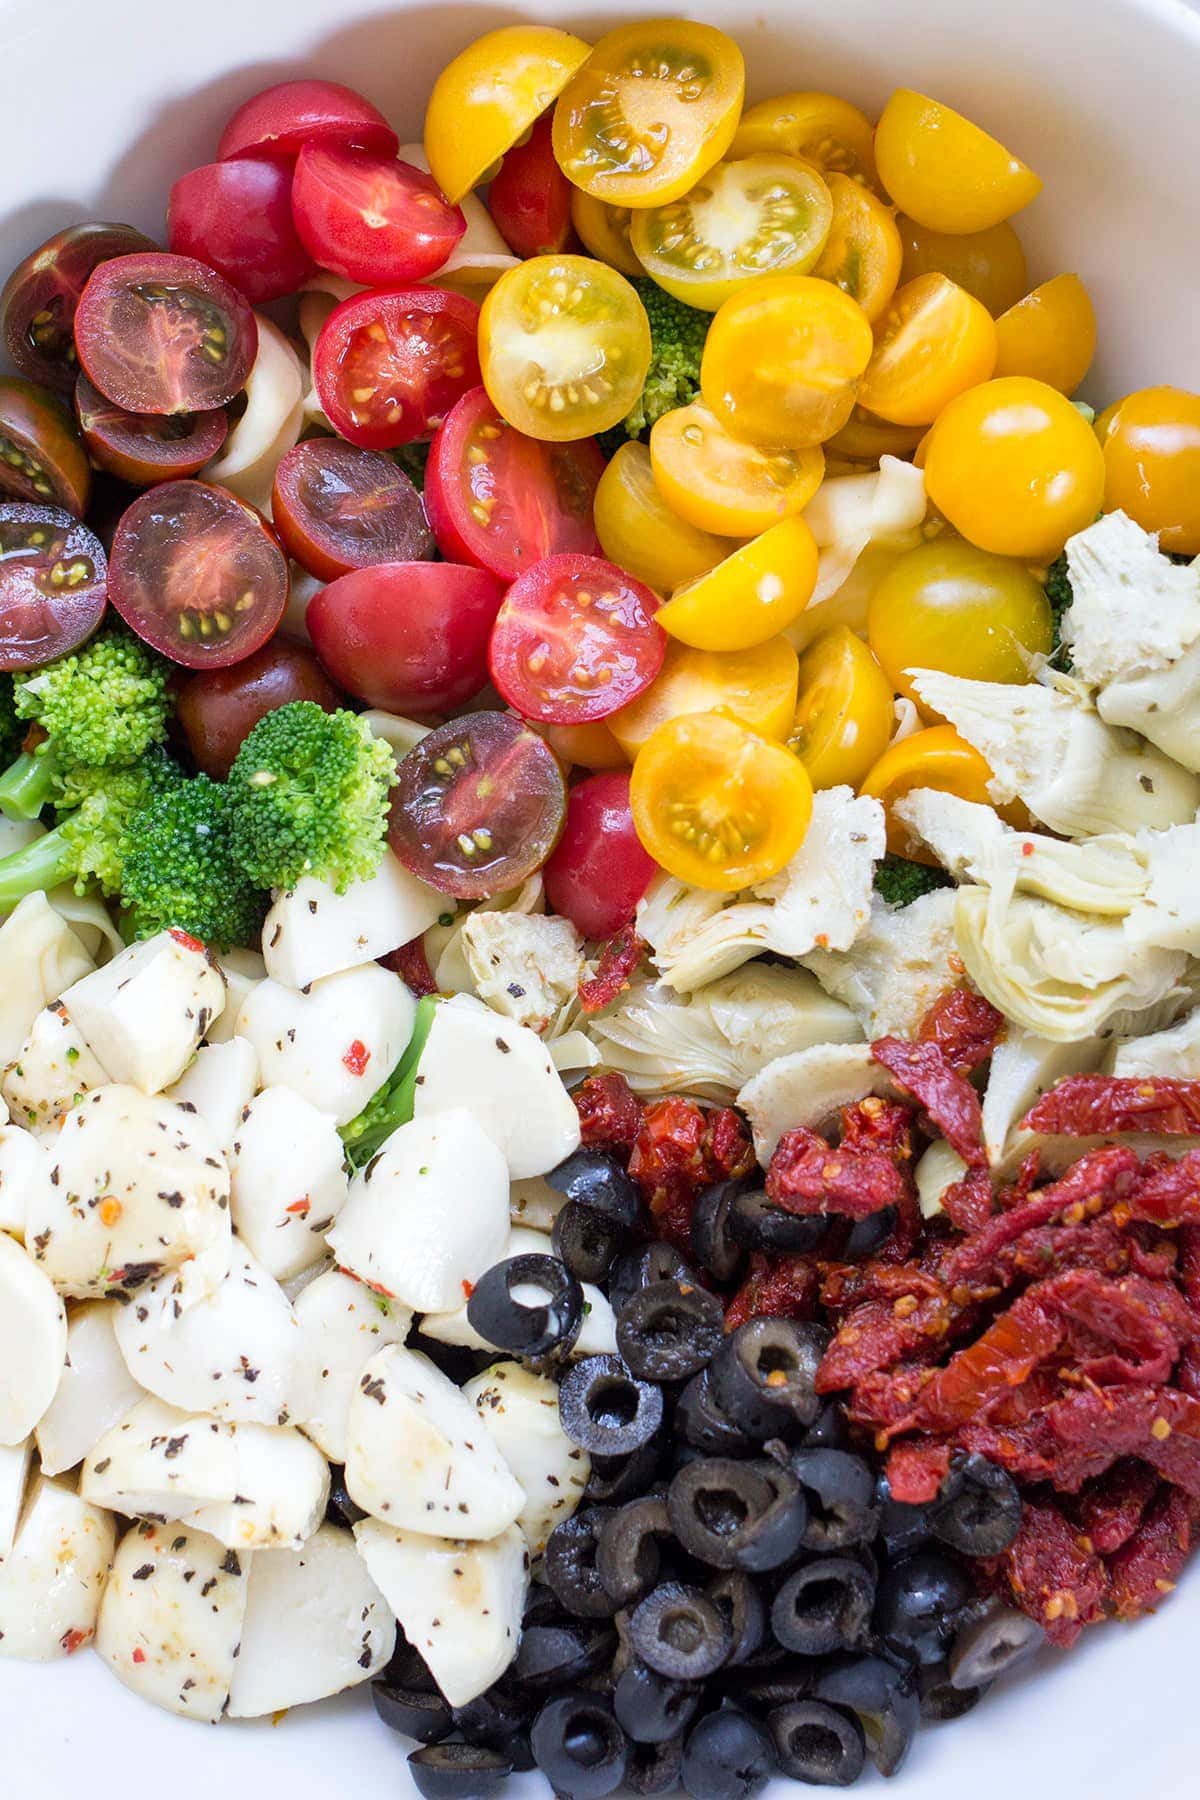 Easy Tortellini Pasta Salad with Sundried Tomatoes and Artichoke Hearts